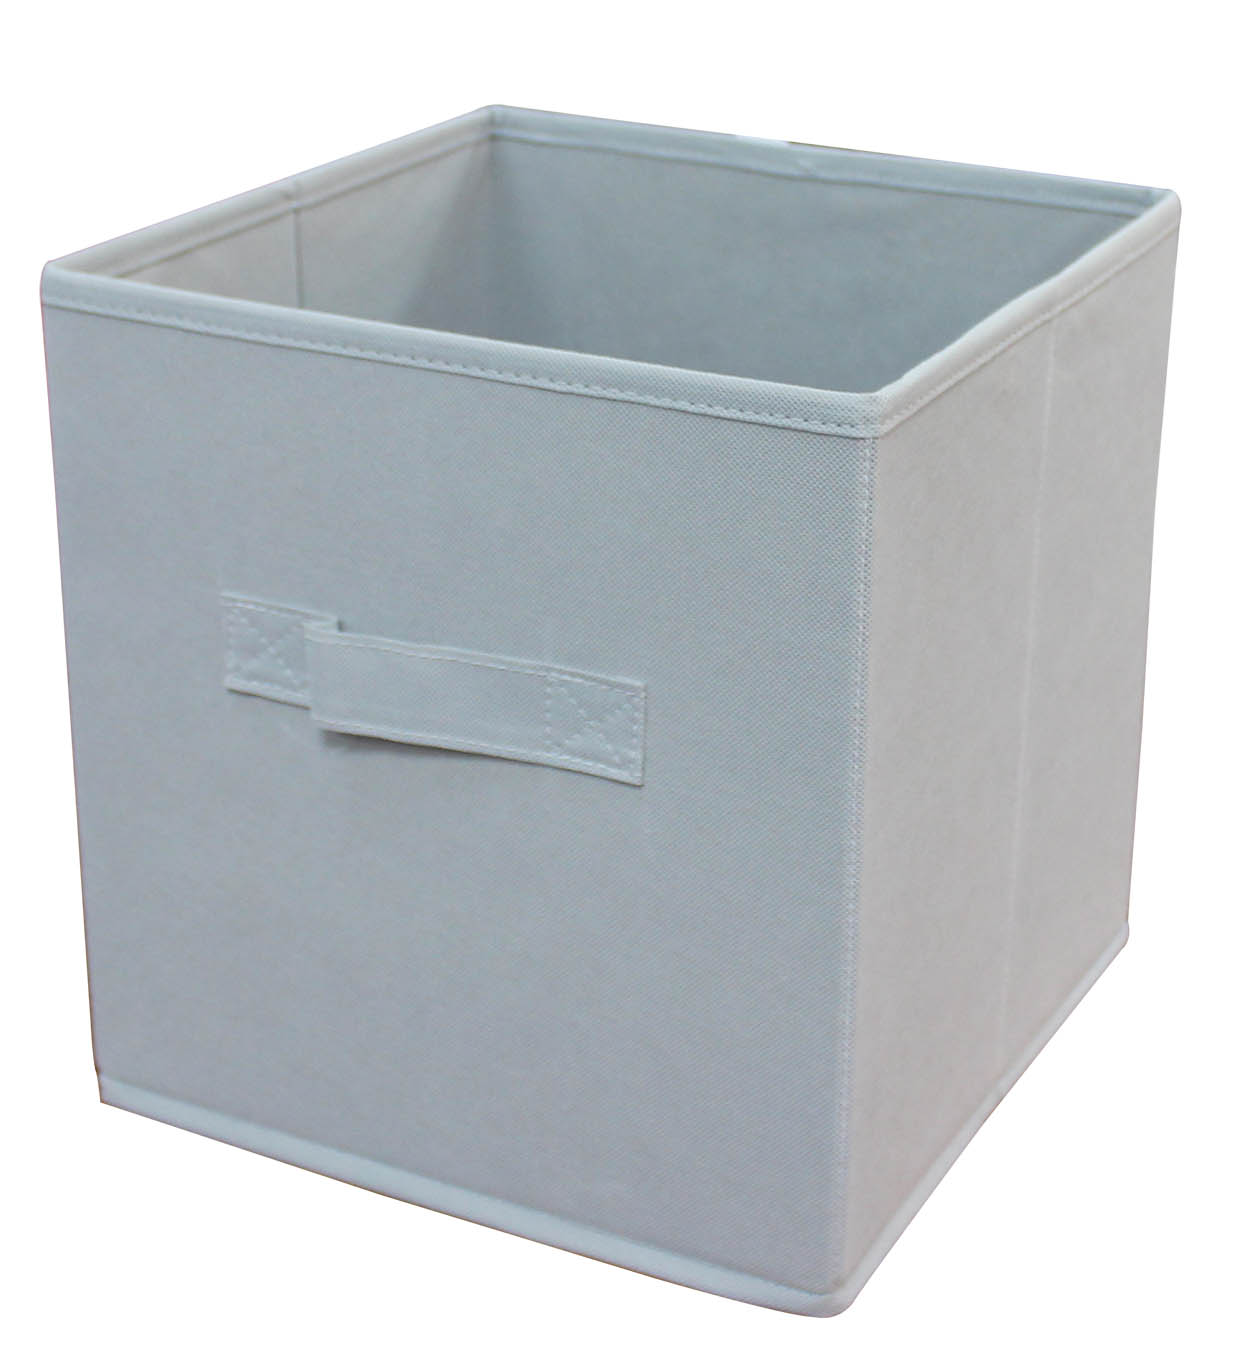 Beau Mainstays Collapsible Fabric Storage Bin